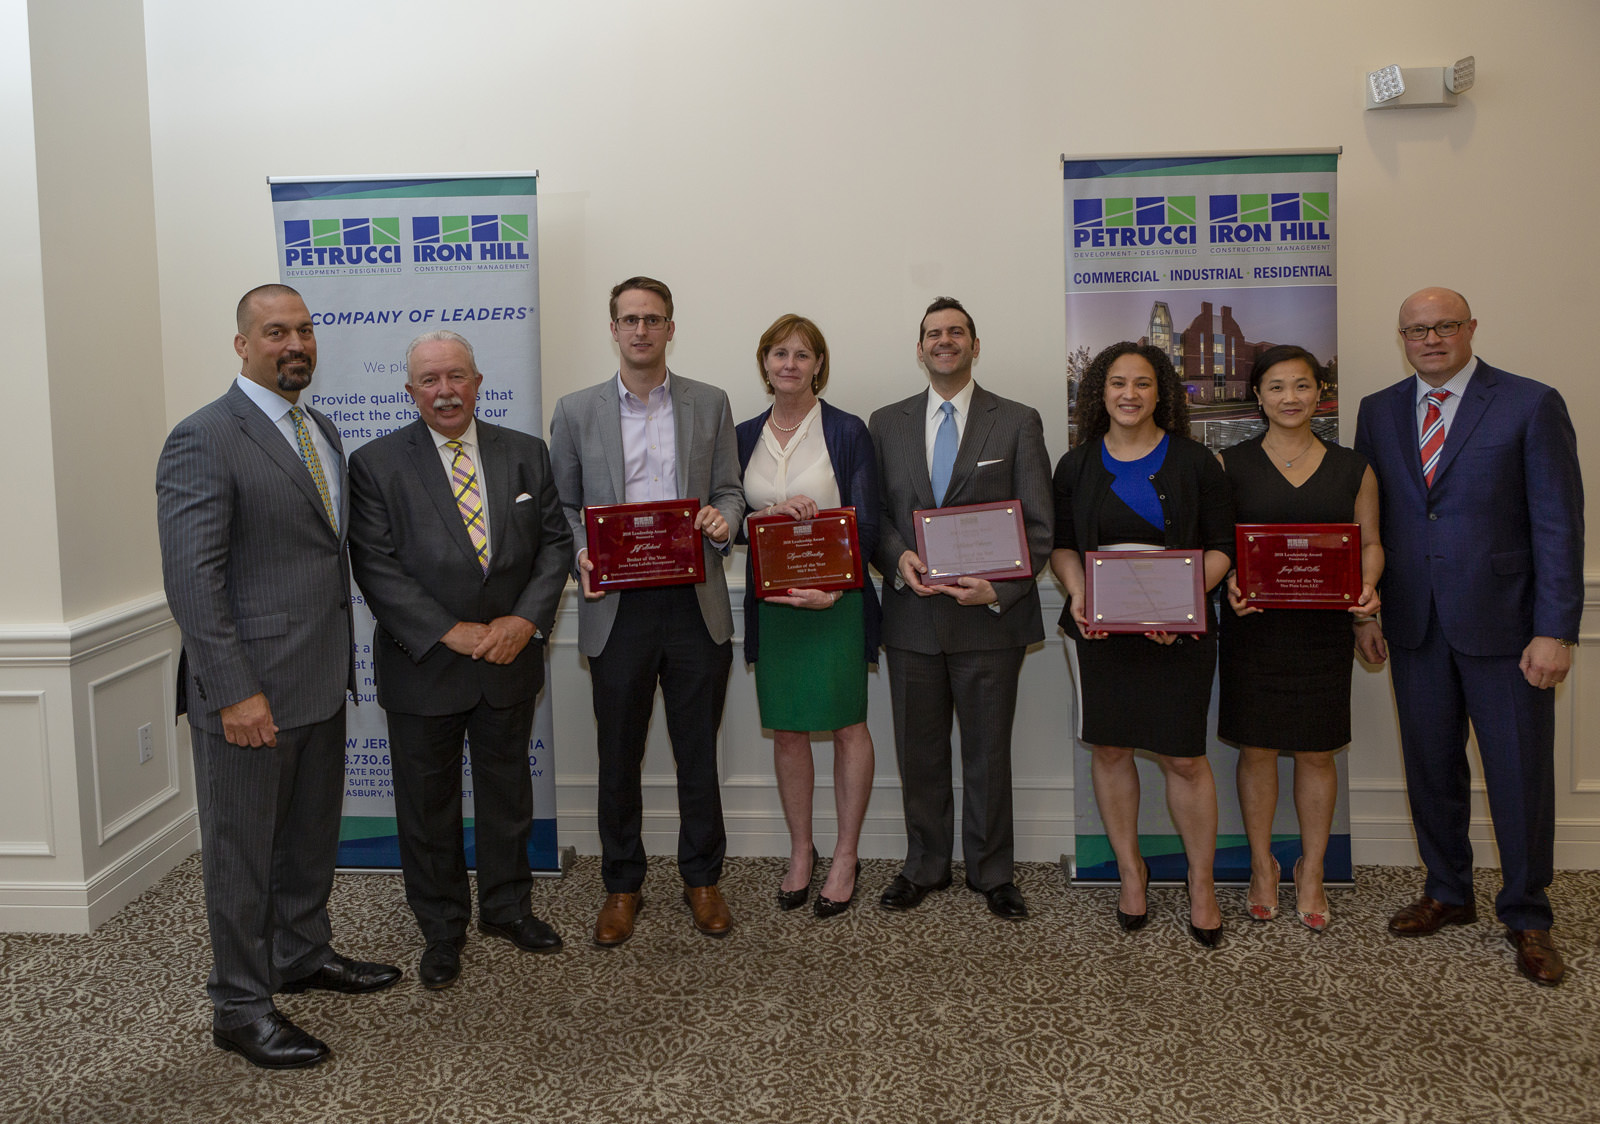 J.G. Petrucci Honors Top Attorneys, Brokers, and Lenders at Annual Awards Dinner